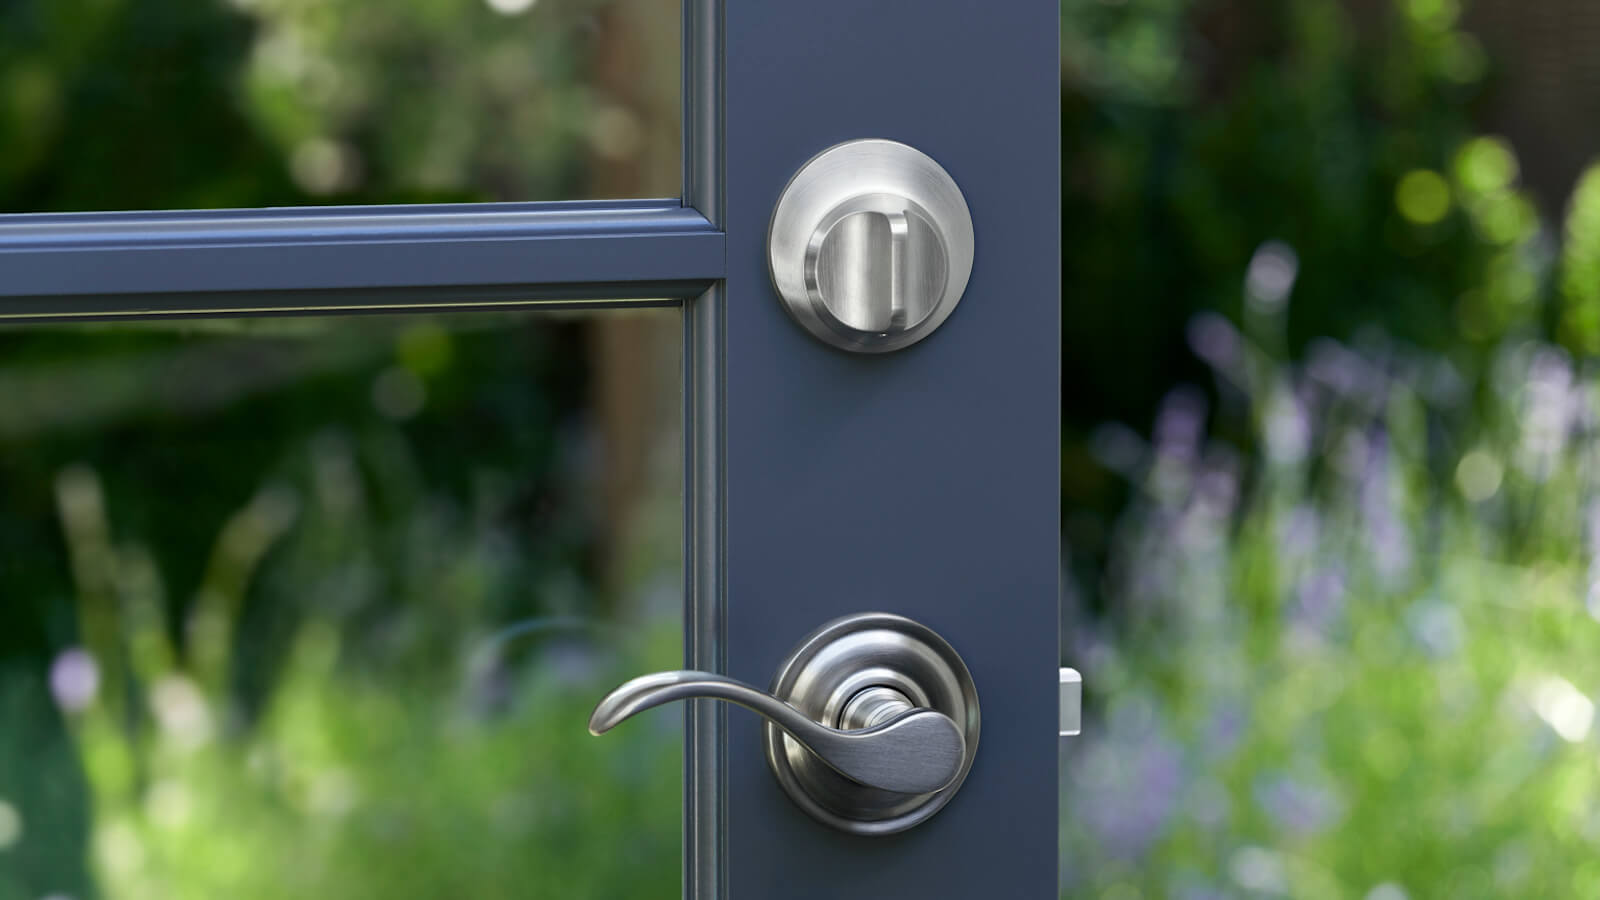 Level Touch keyless door lock lets you enter with touch